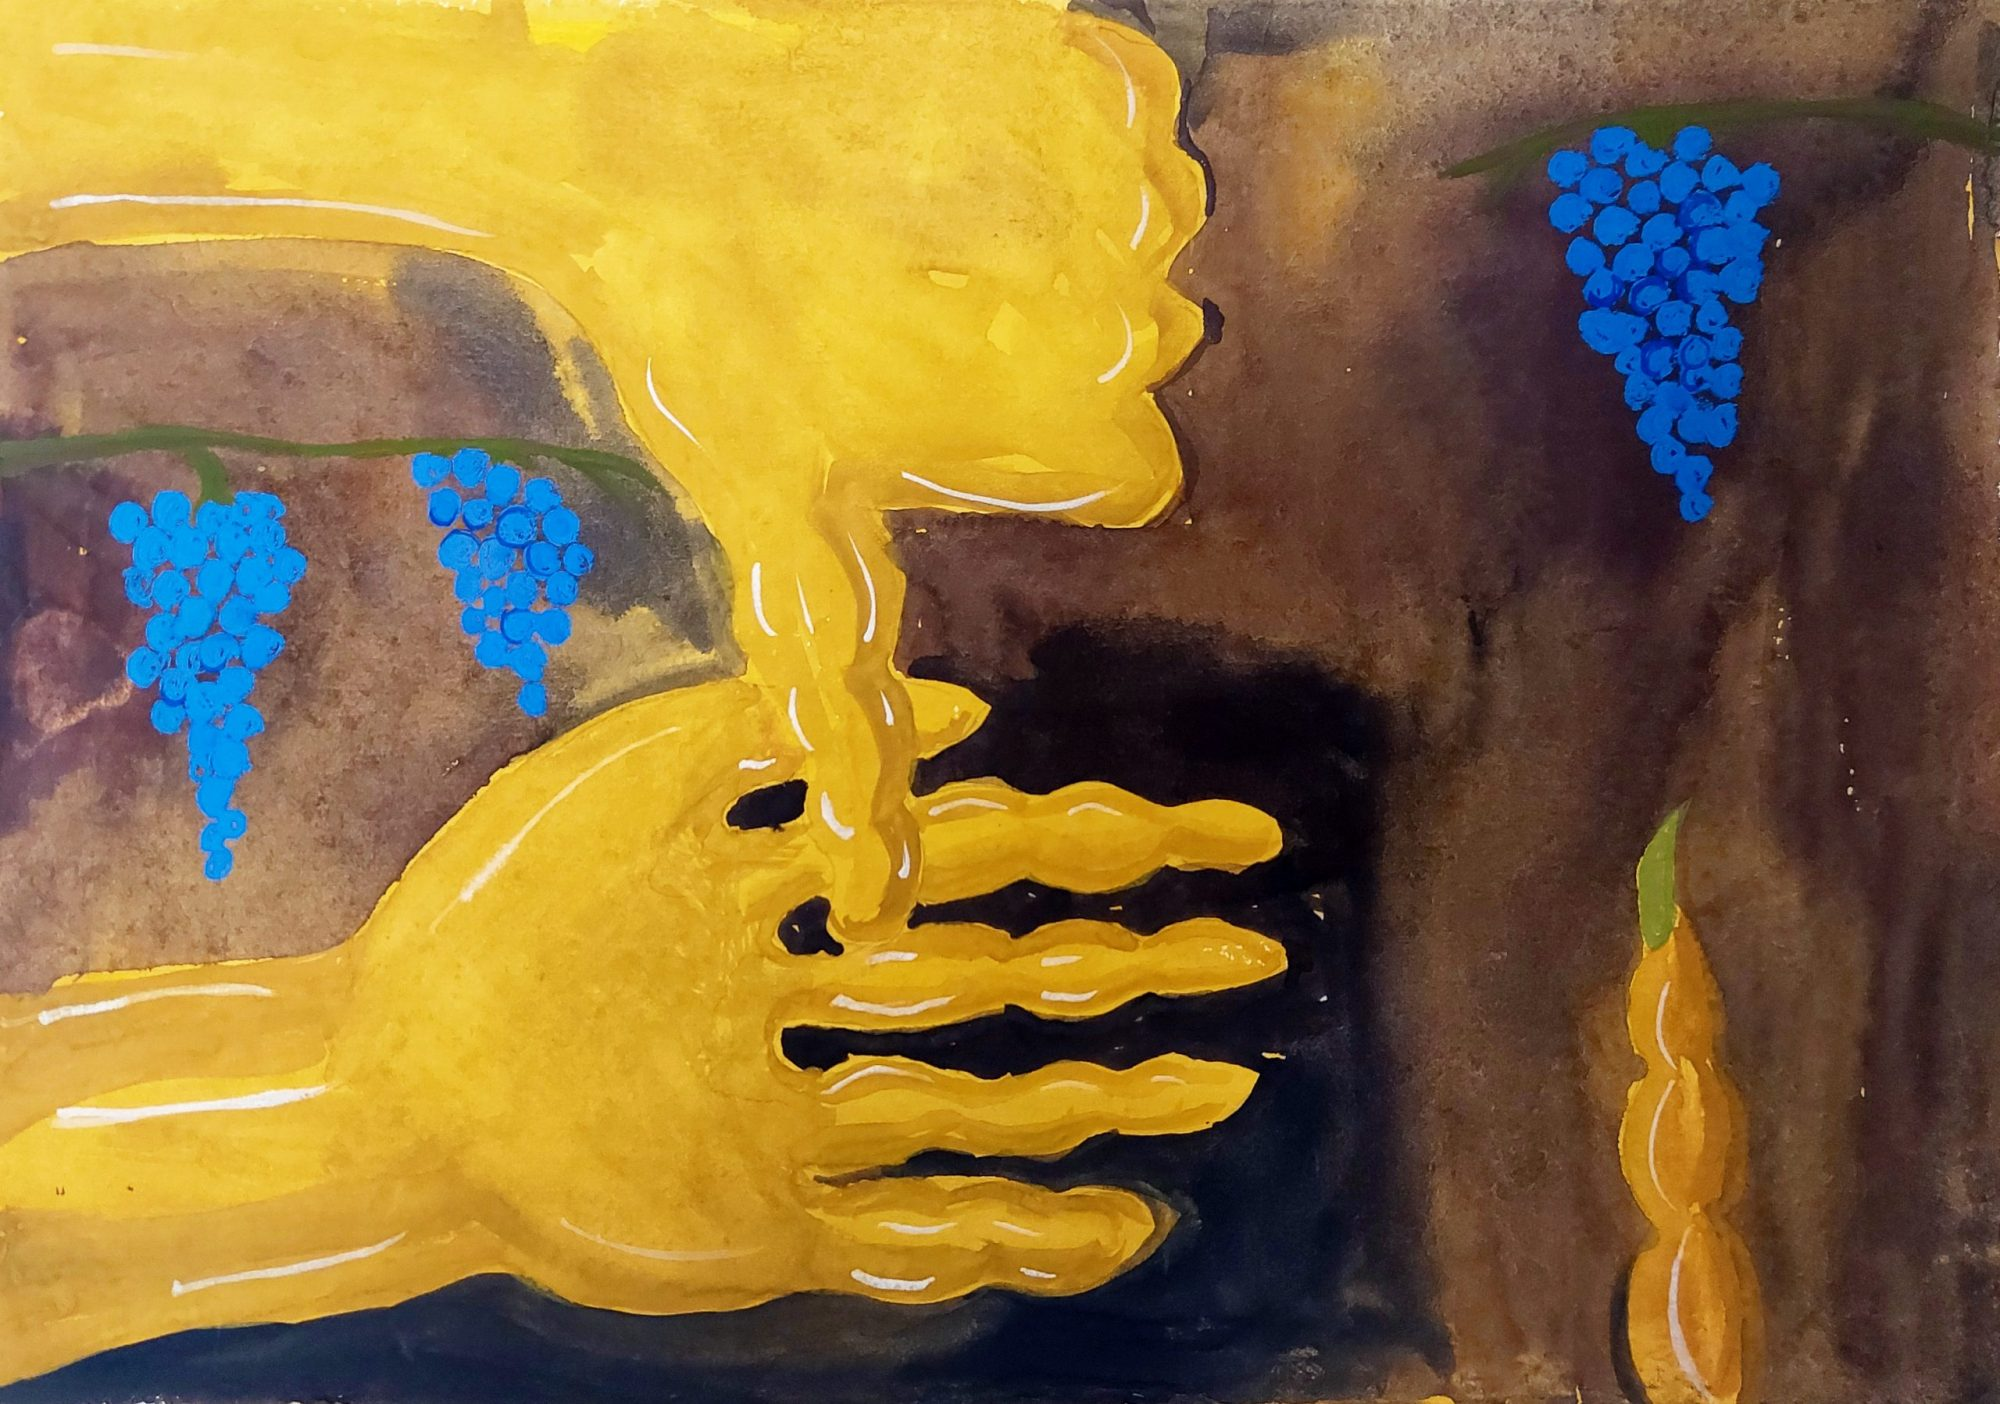 This landscape A4 painting shows two yellow hands and forearms stretched out to the centre of the page from the left hand side. The upper hand shows a 'thumbs down' pointing into the lower hand that remains palm up and open. In the background are bunches of blue berries in a brown cave-like space.